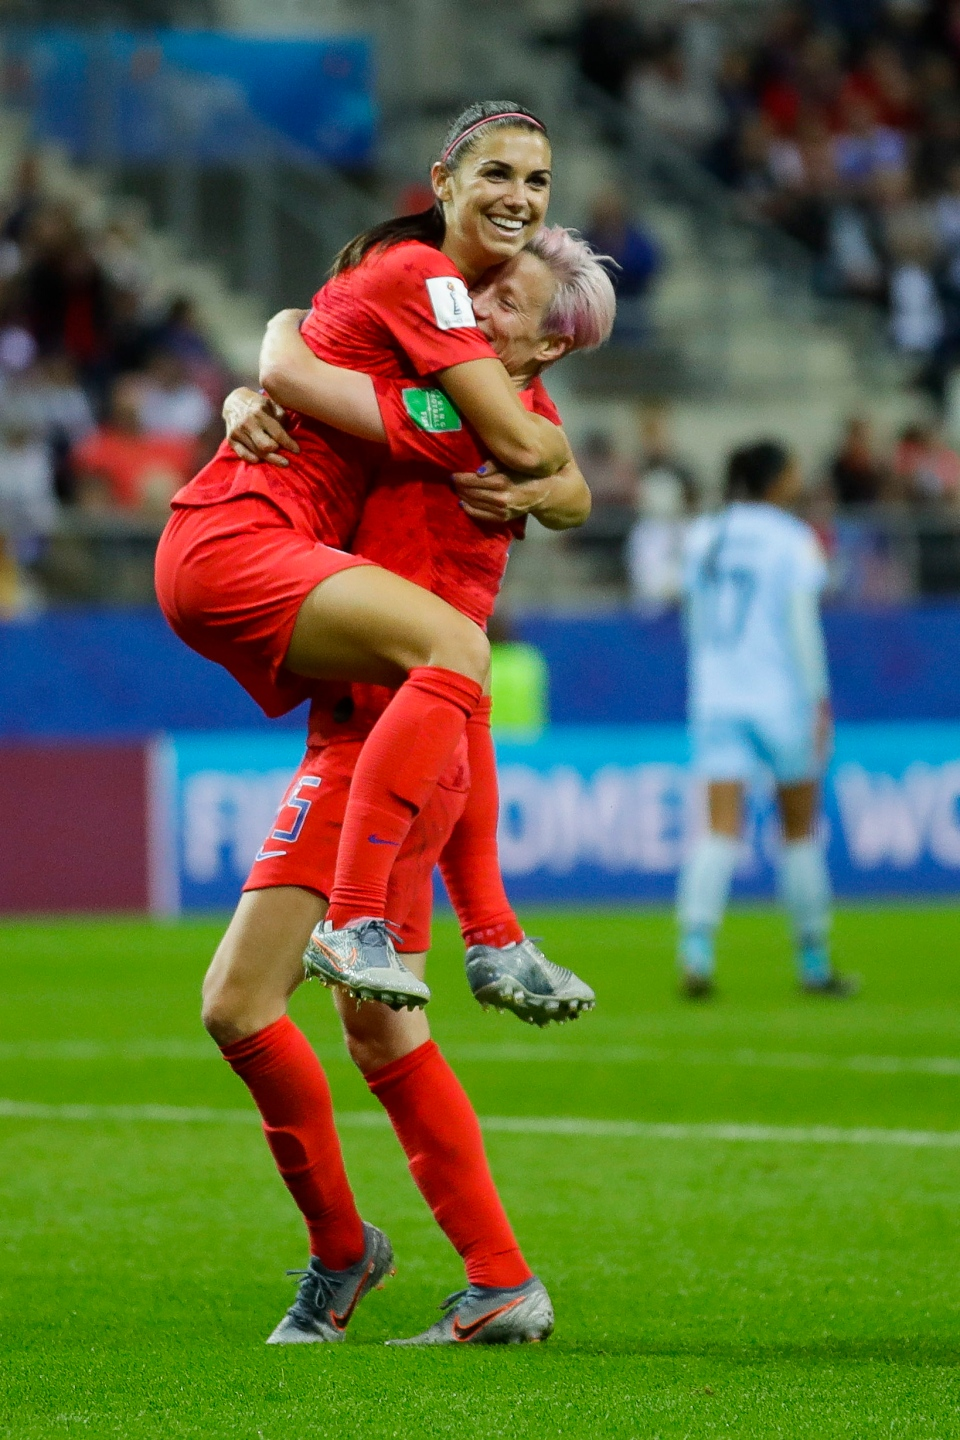 United States' Alex Morgan, left, celebrates with her teammate Megan Rapinoe after scoring her team's twelfth goal during the Women's World Cup Group F soccer match between United States and Thailand at the Stade Auguste-Delaune in Reims, France, Tuesday, June 11, 2019. (AP Photo/Alessandra Tarantino)